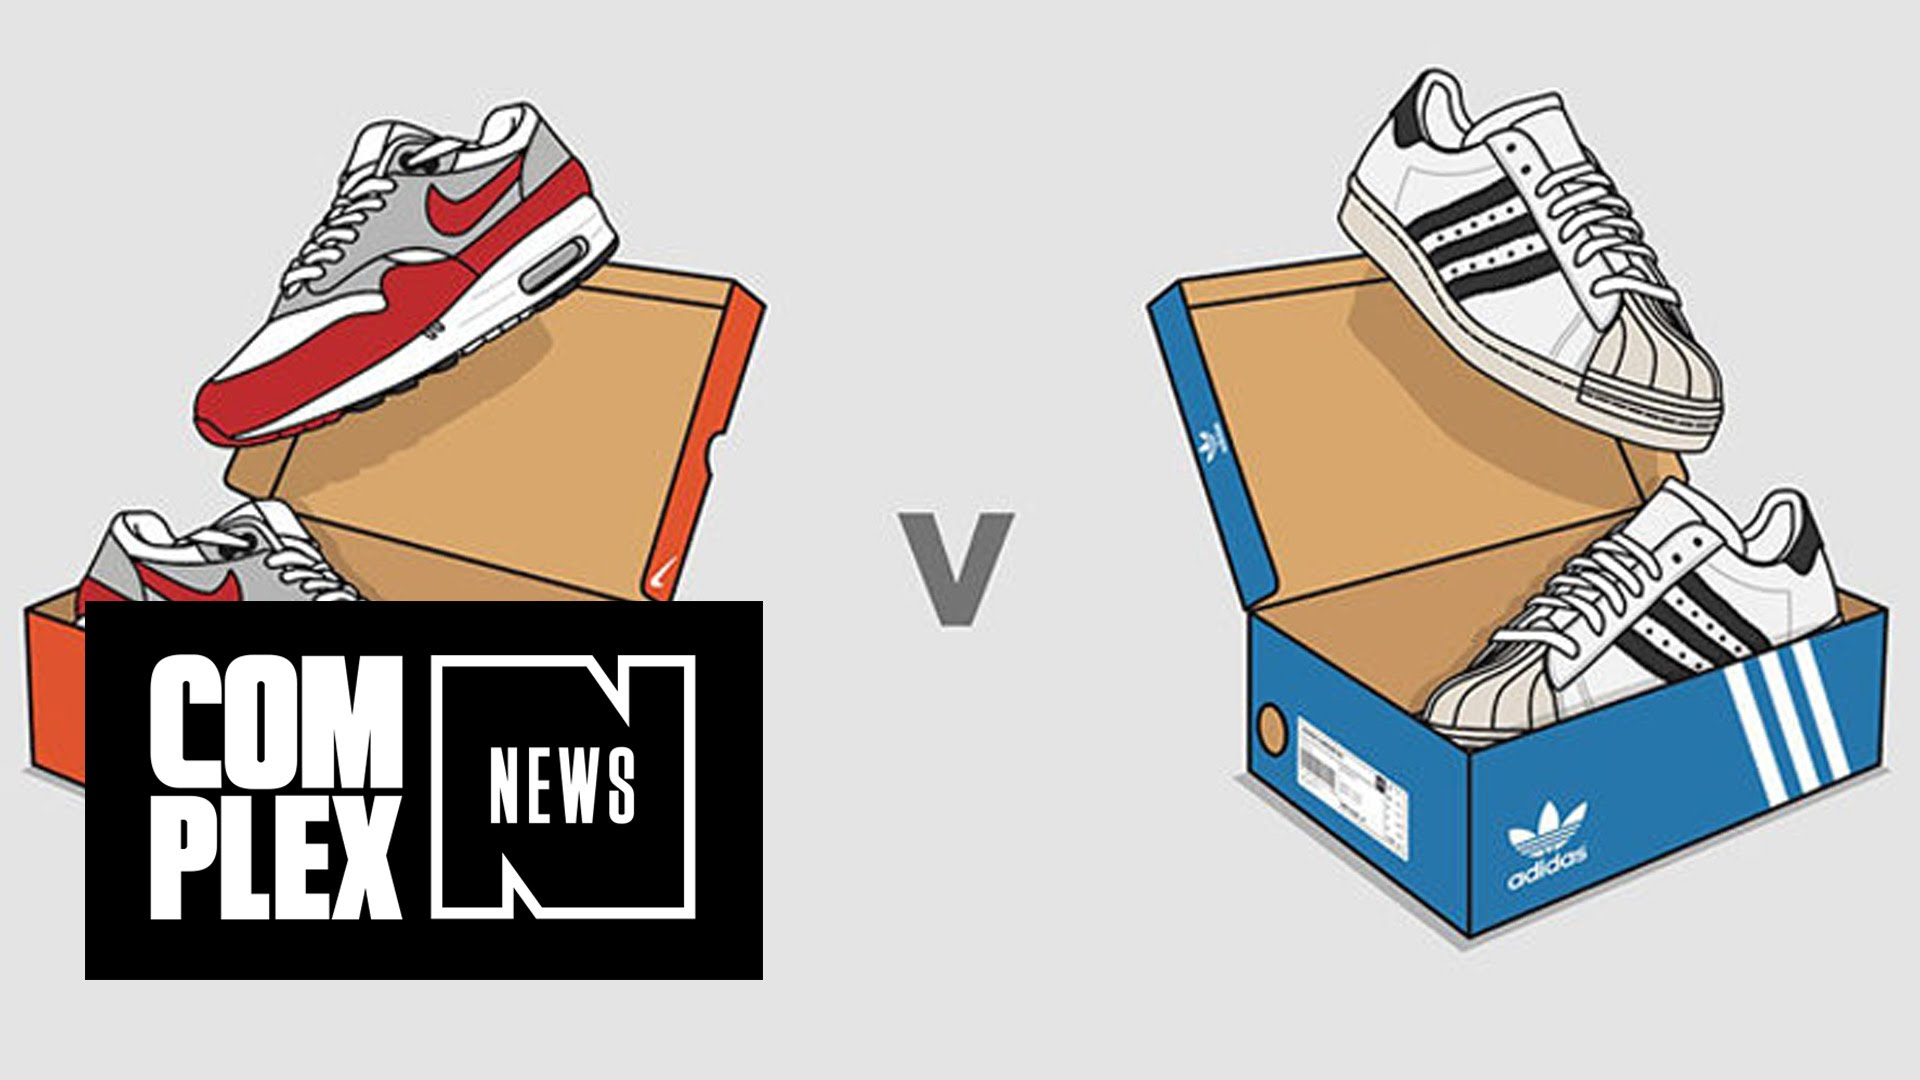 Adidas clipart dan nike Nike's Faster Are adidas' Sales